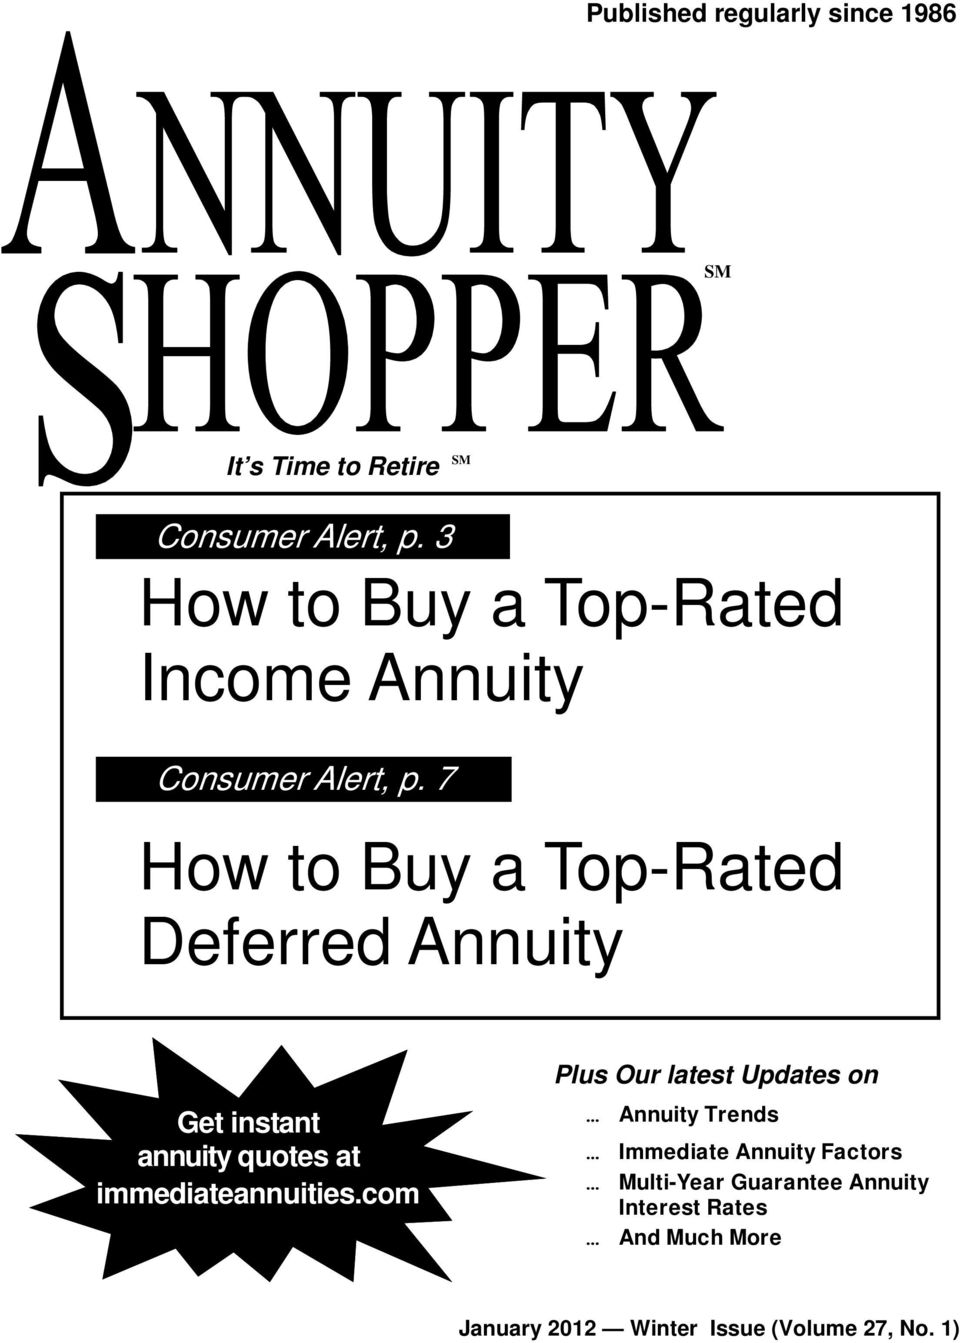 Updates on Get instant annuity quotes at immediateannuities.